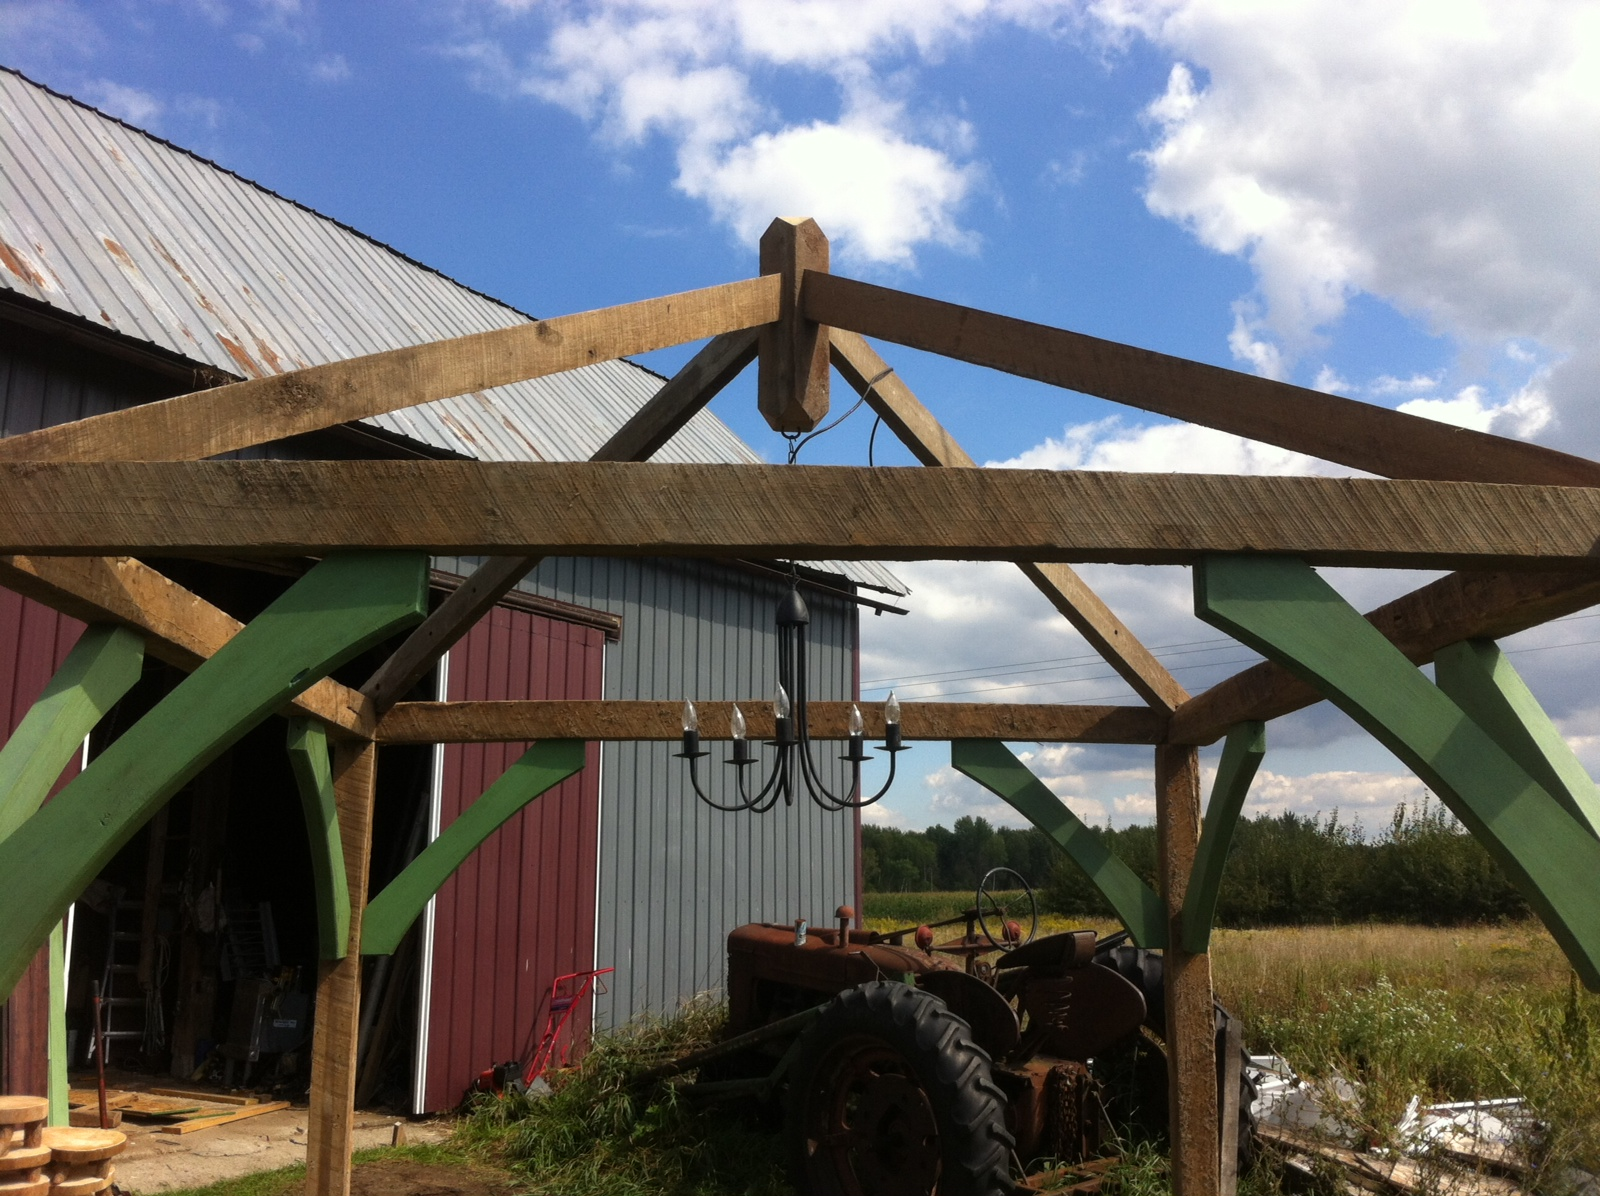 For Sale: Rustic Wedding Gazebo out of Old Barn Wood — The Knot